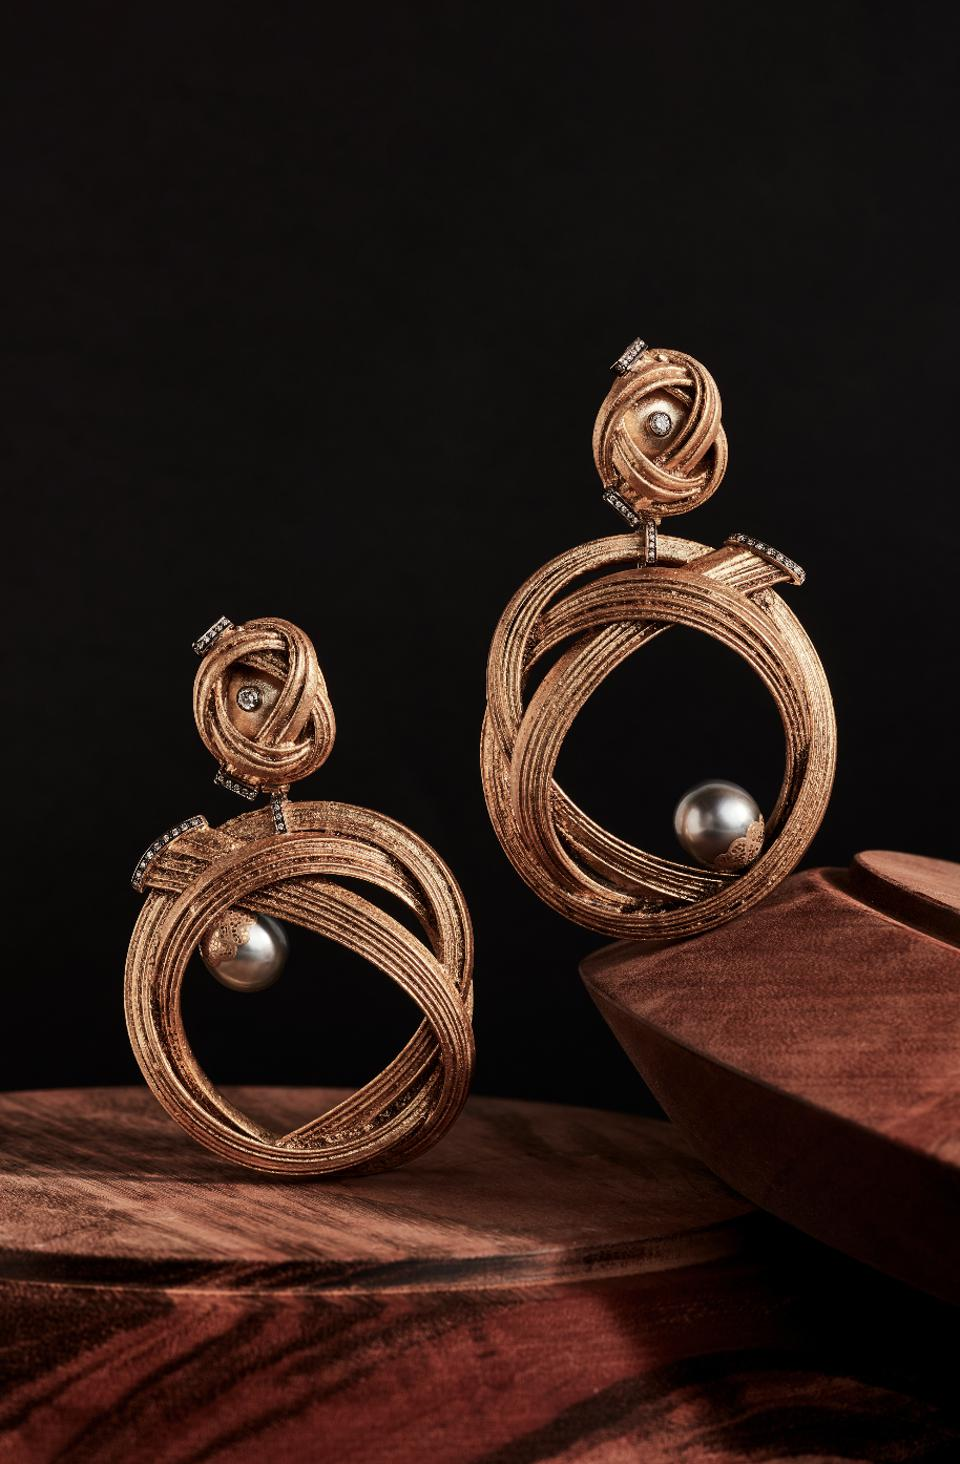 Bamboo is elevated to a precious material in these earrings